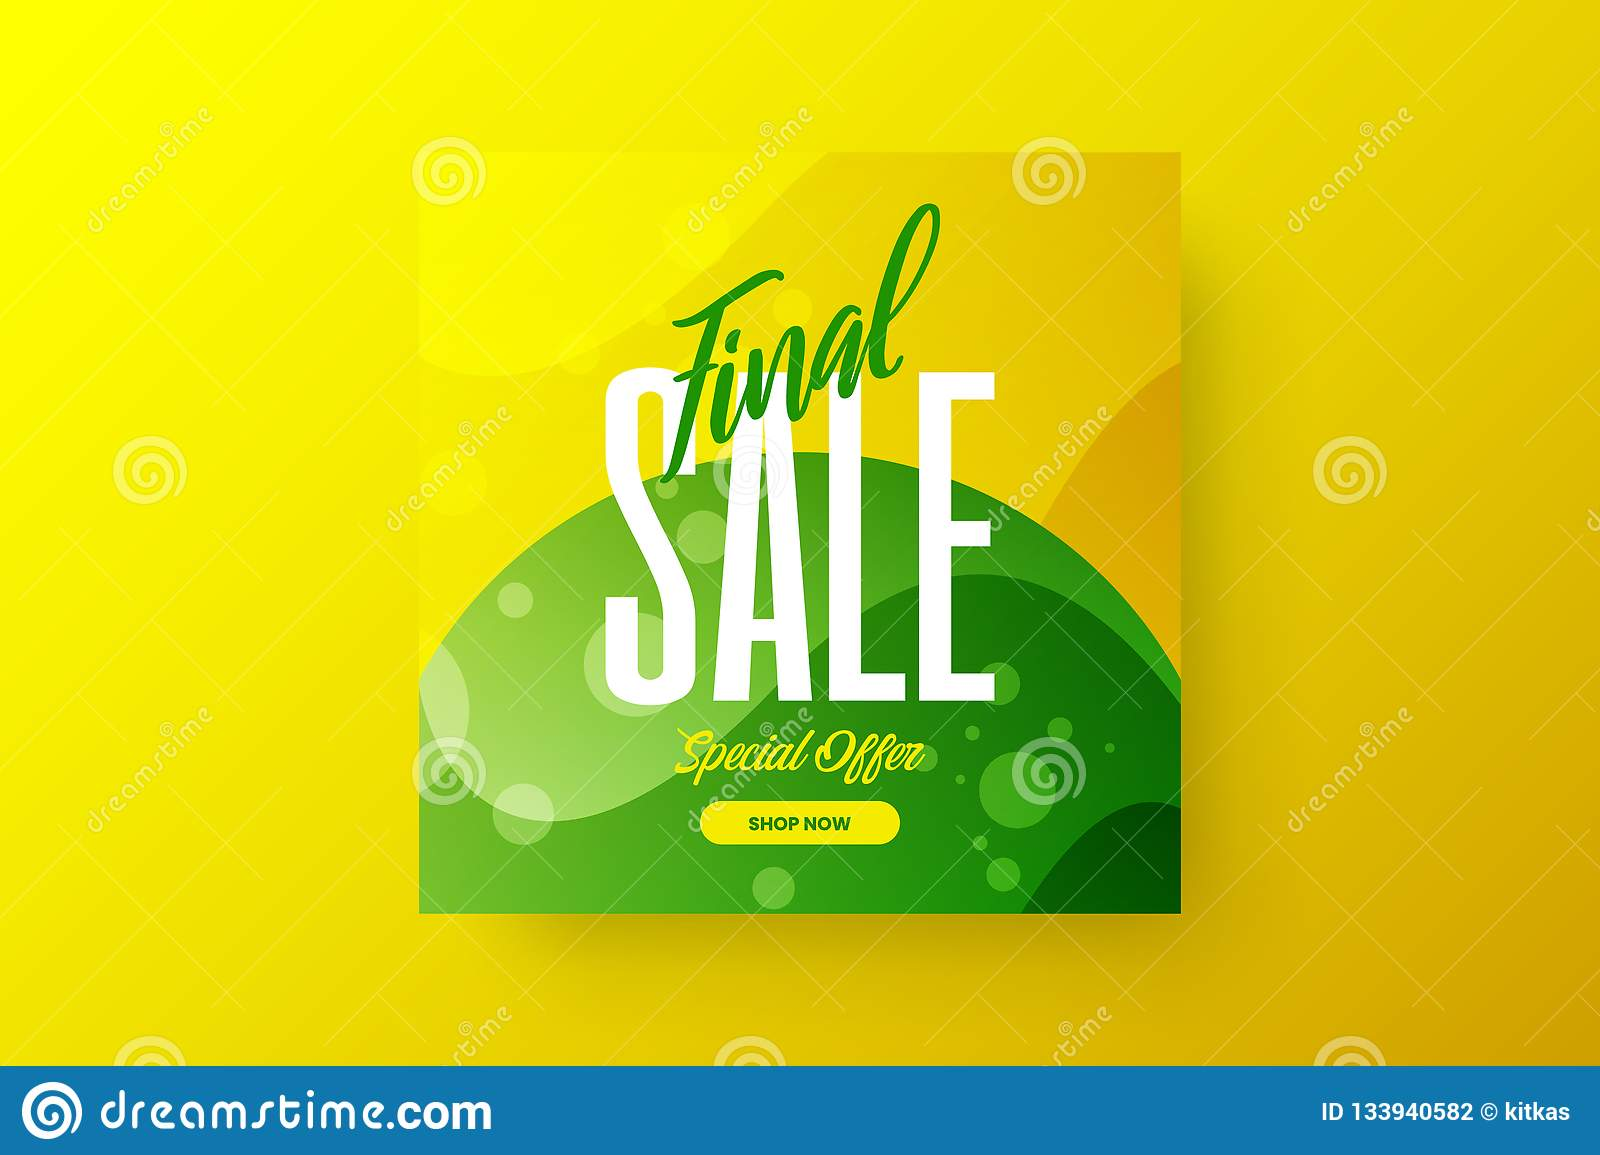 Abstract final sale vector design banner template. Marketing special offer discount social media promotion illustration layout.